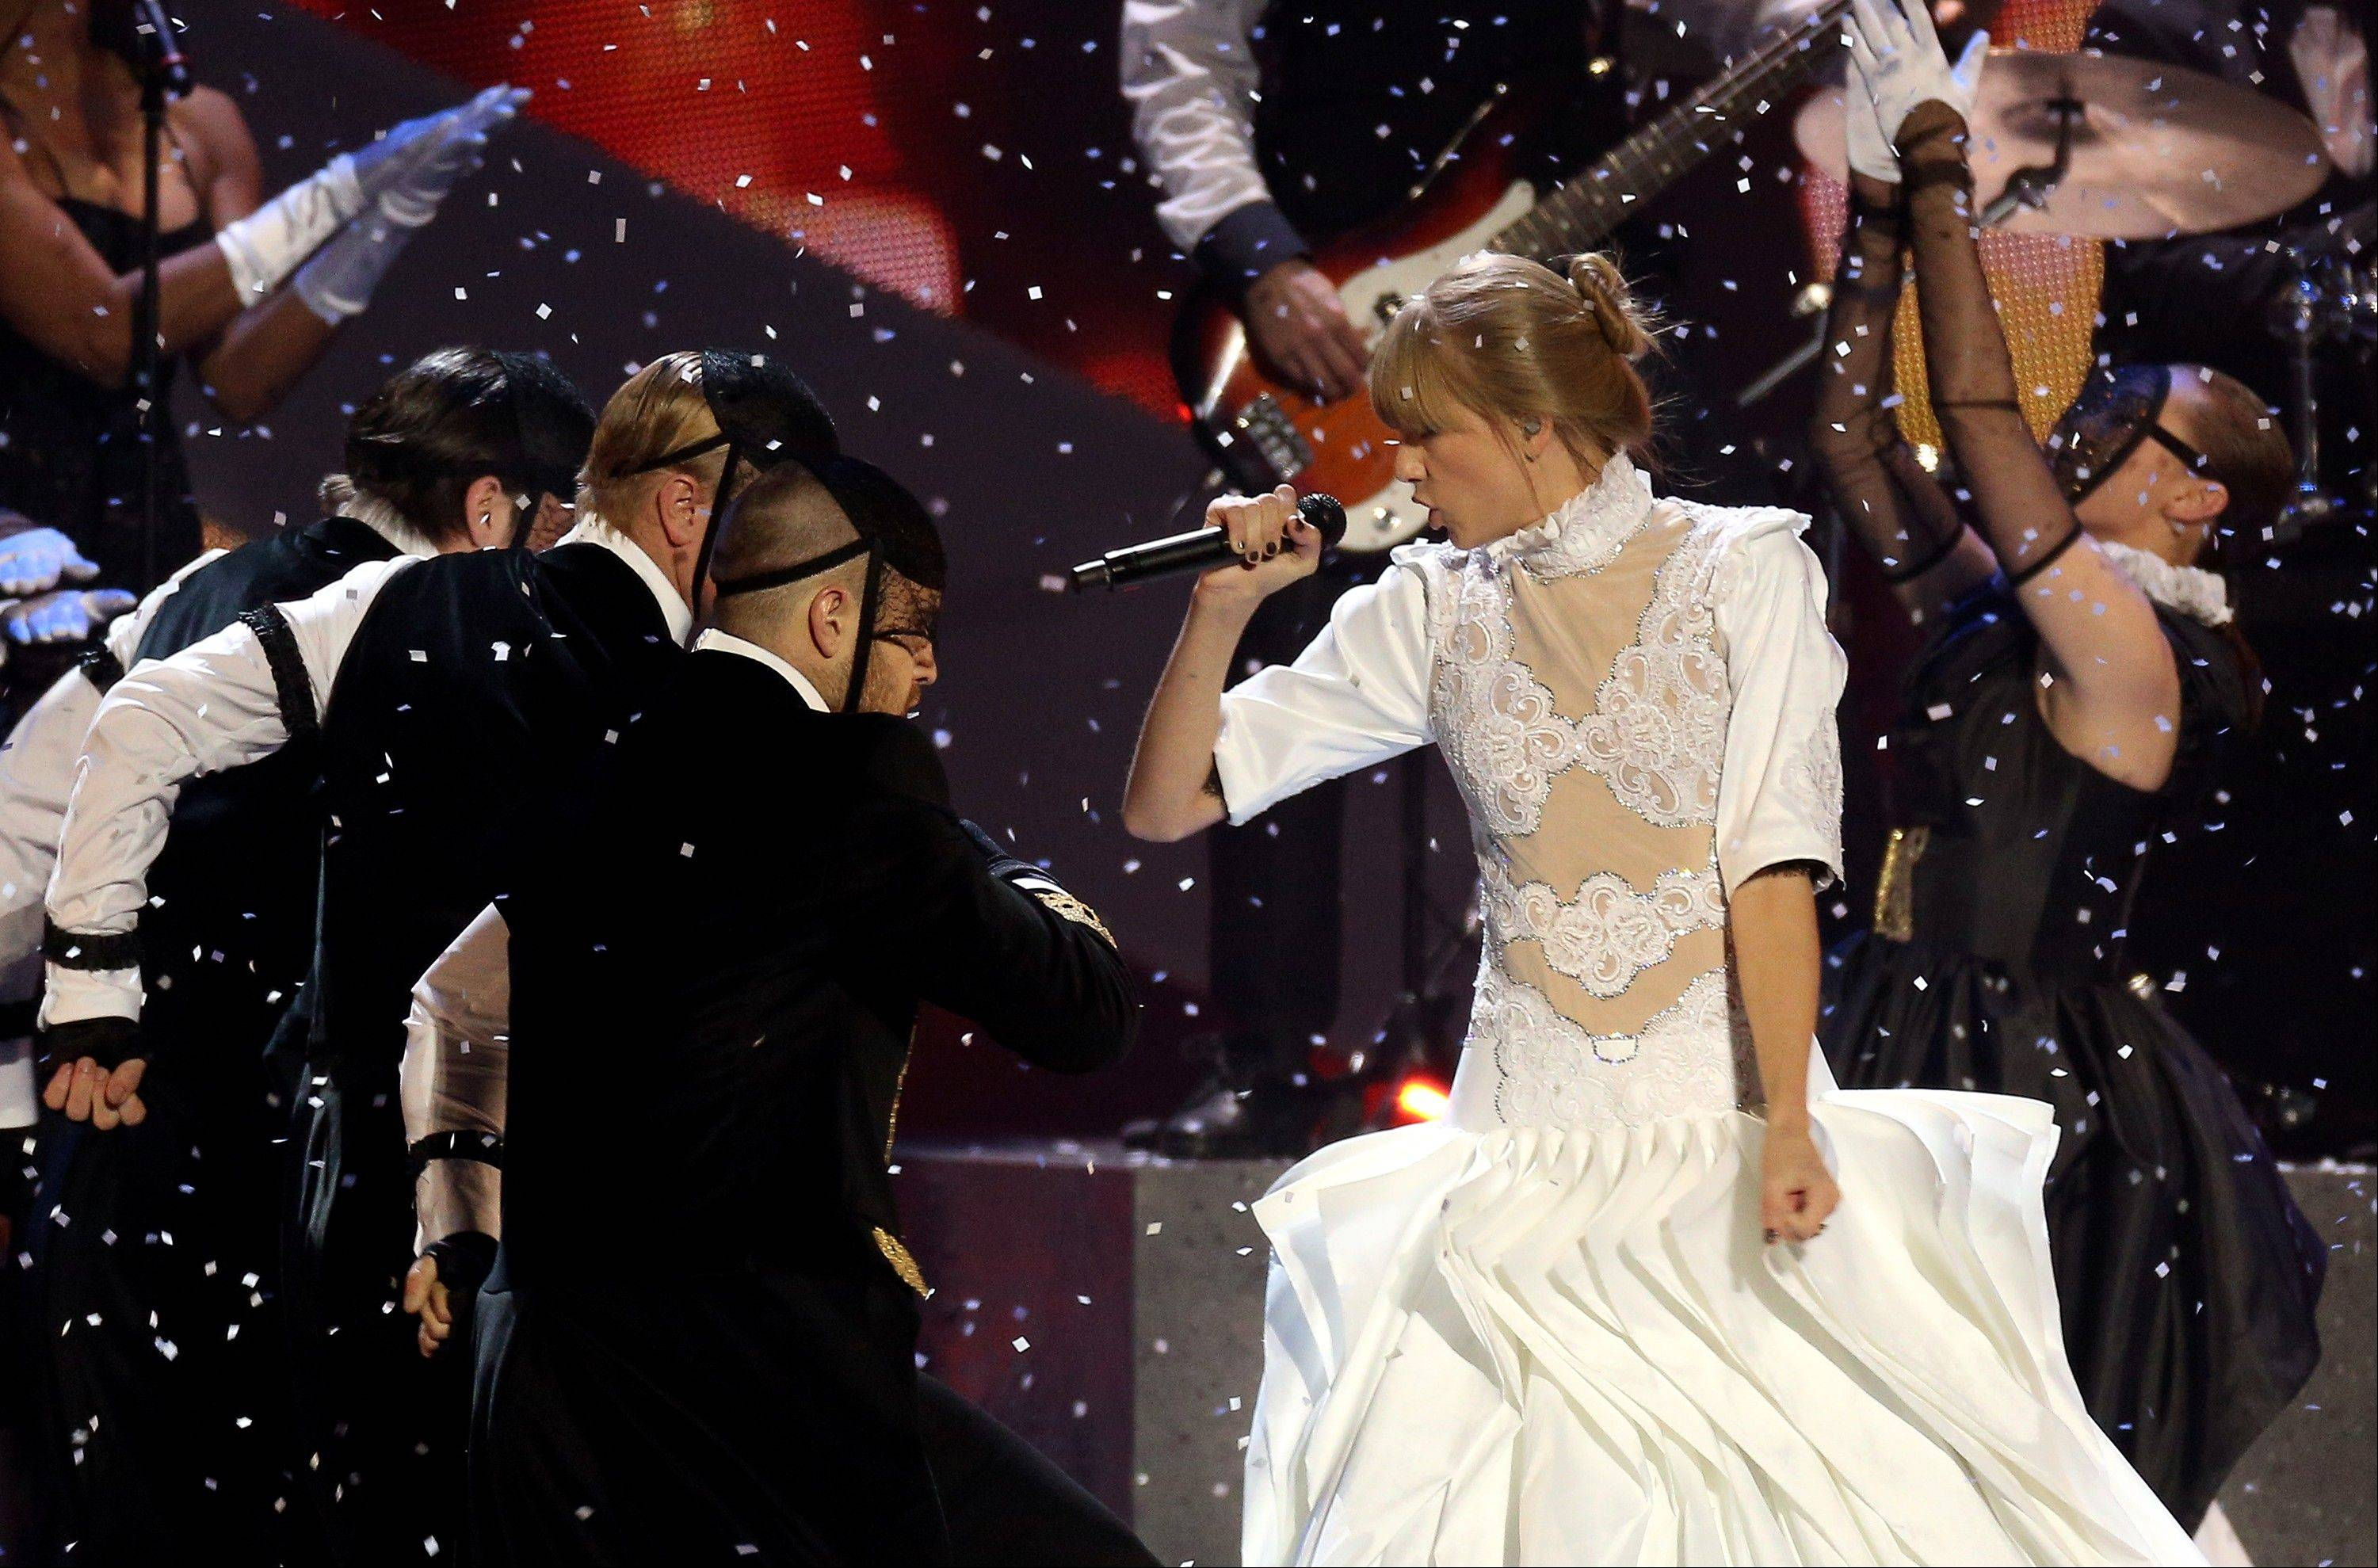 Taylor Swift wowed the BRIT Awards 2013 crowd Wednesday.